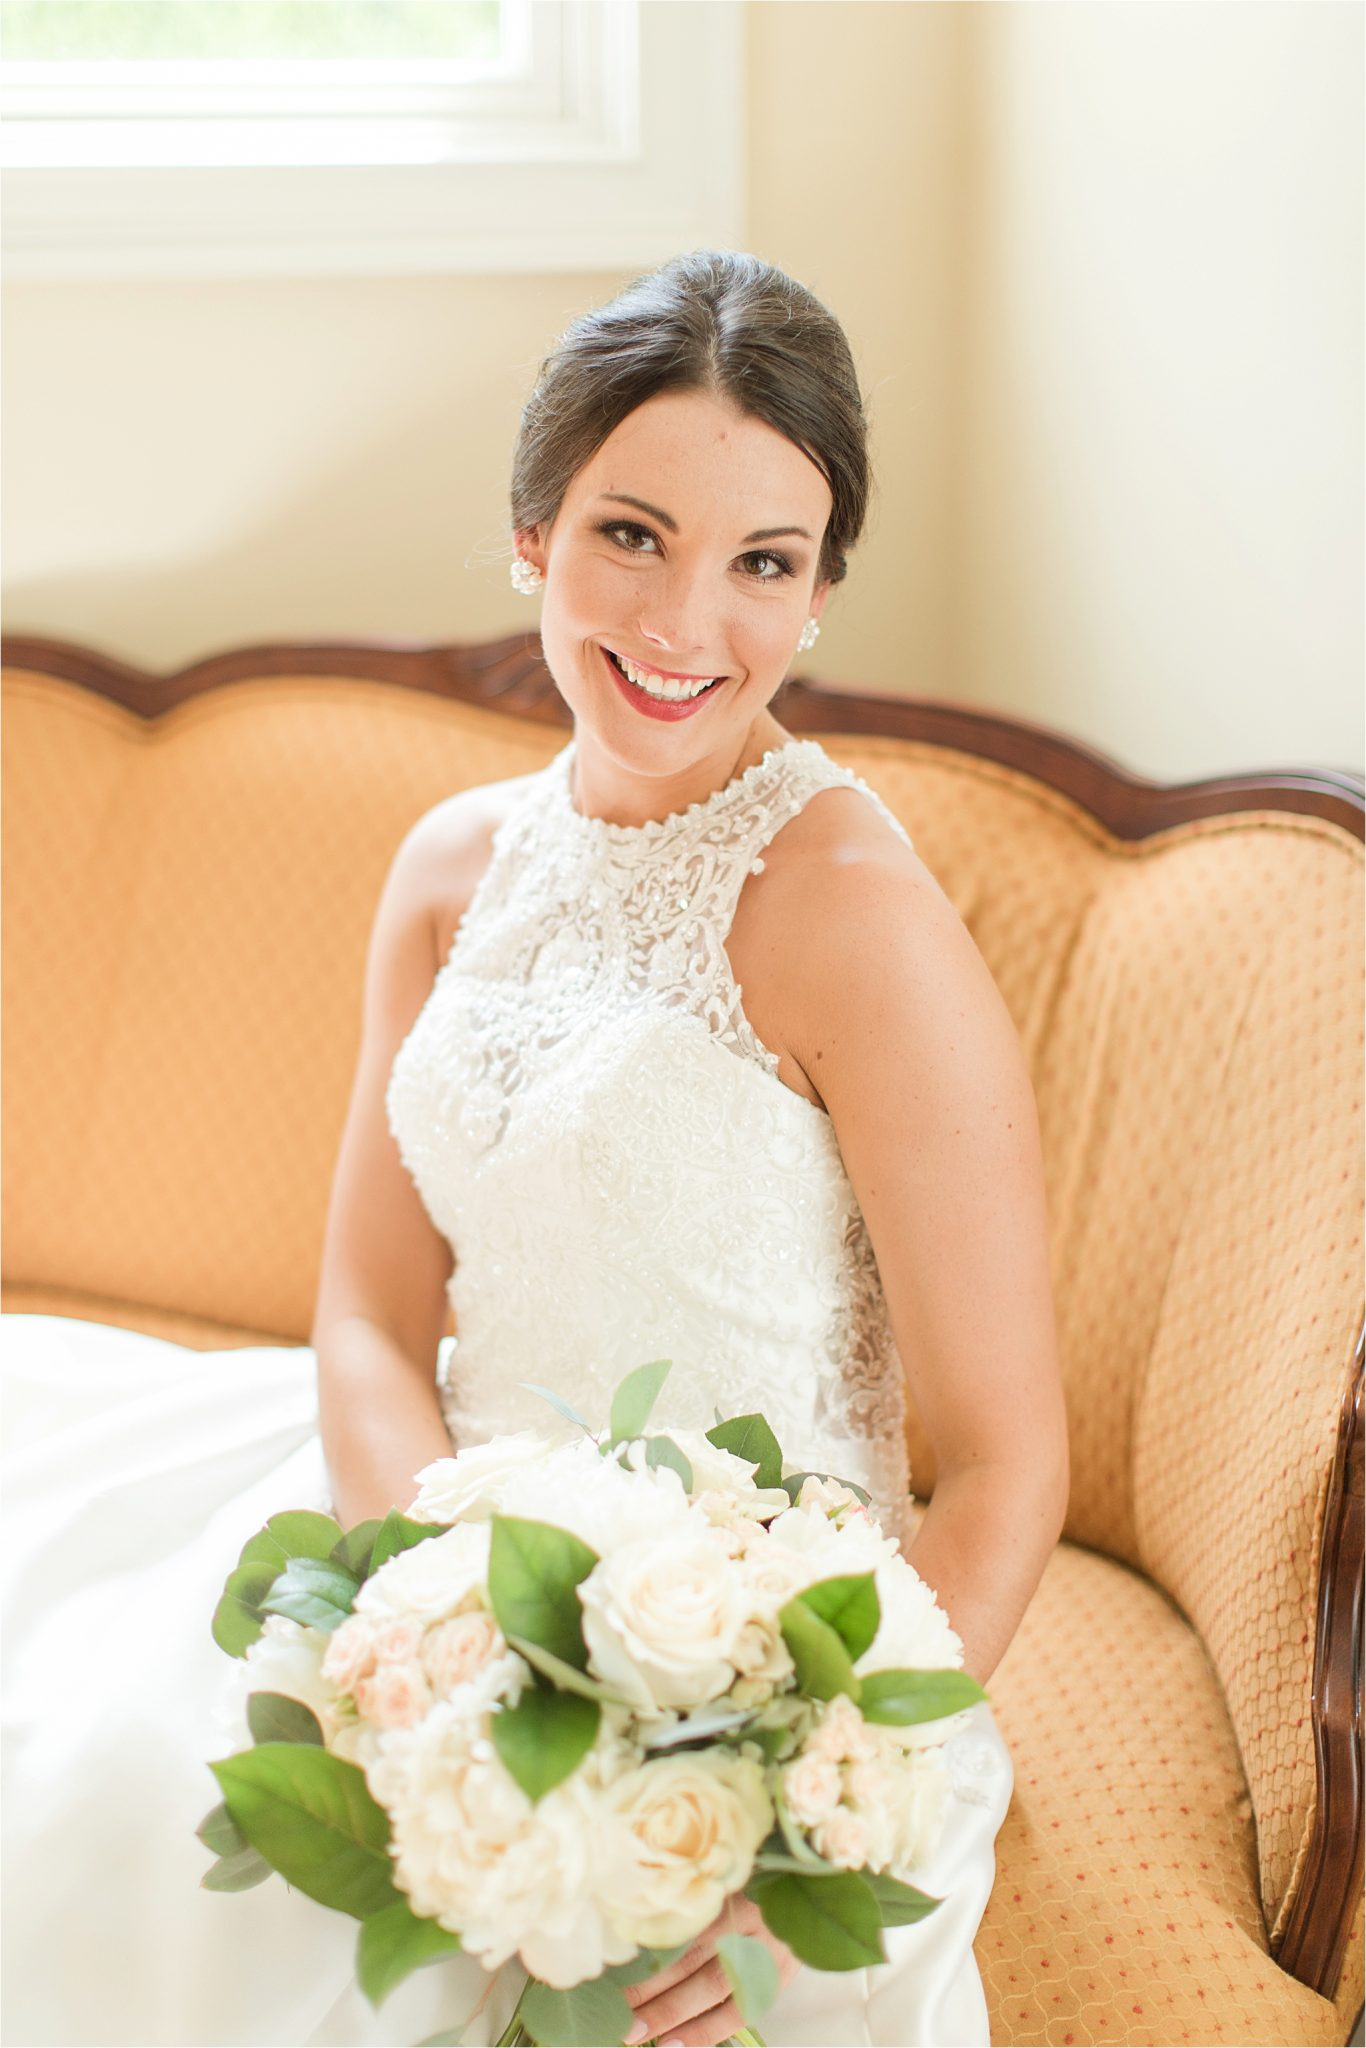 Sonnet House, Birmingham Alabama Wedding Photographer, Bridal shoot, Wedding bouquet